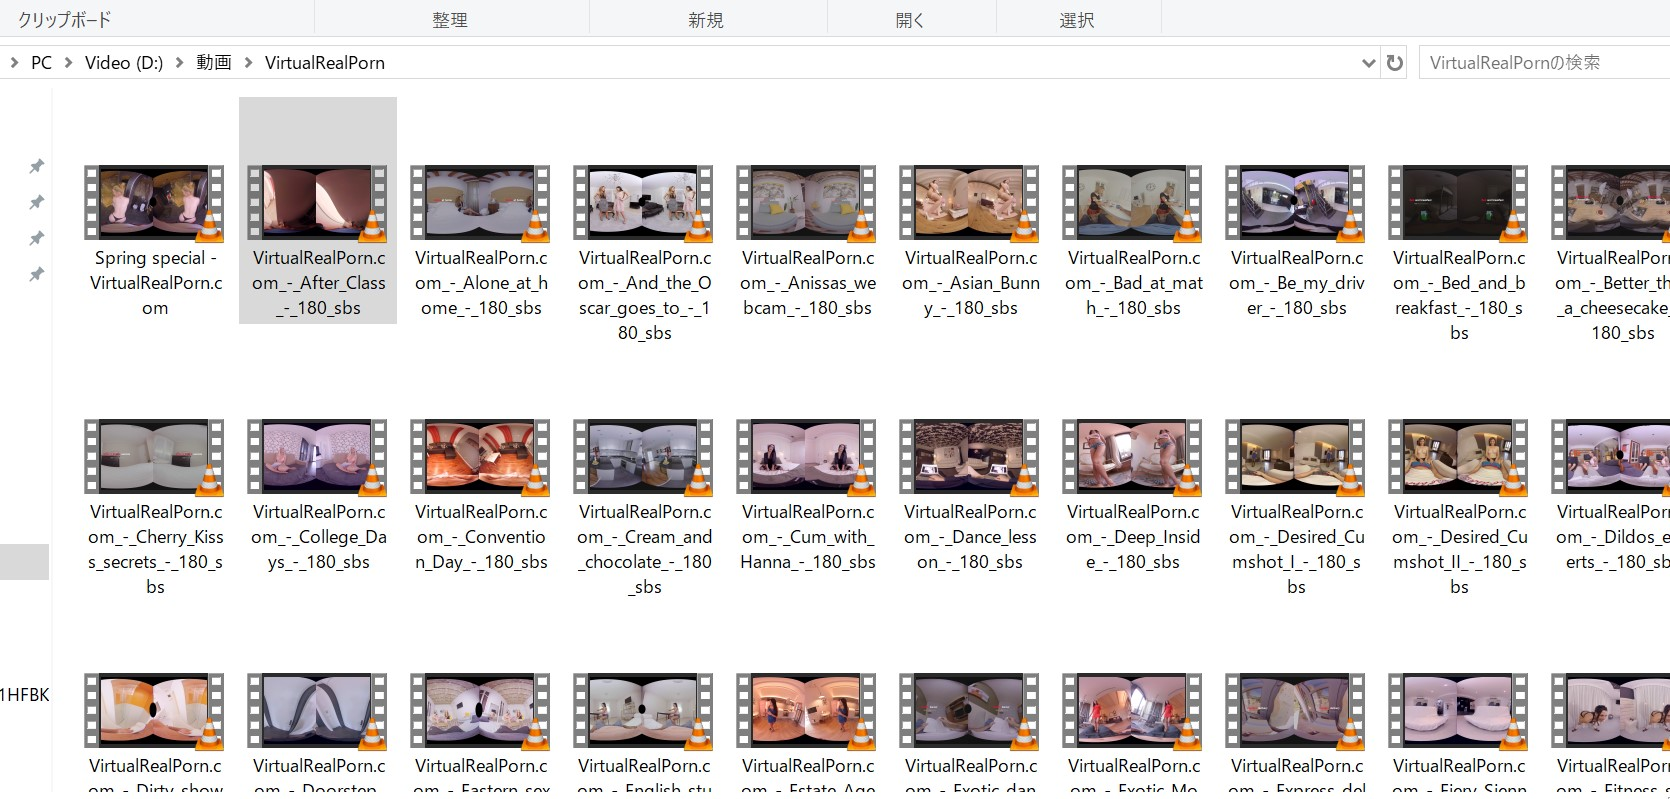 some of the uncensored VR erotic videos I downloaded and obtained